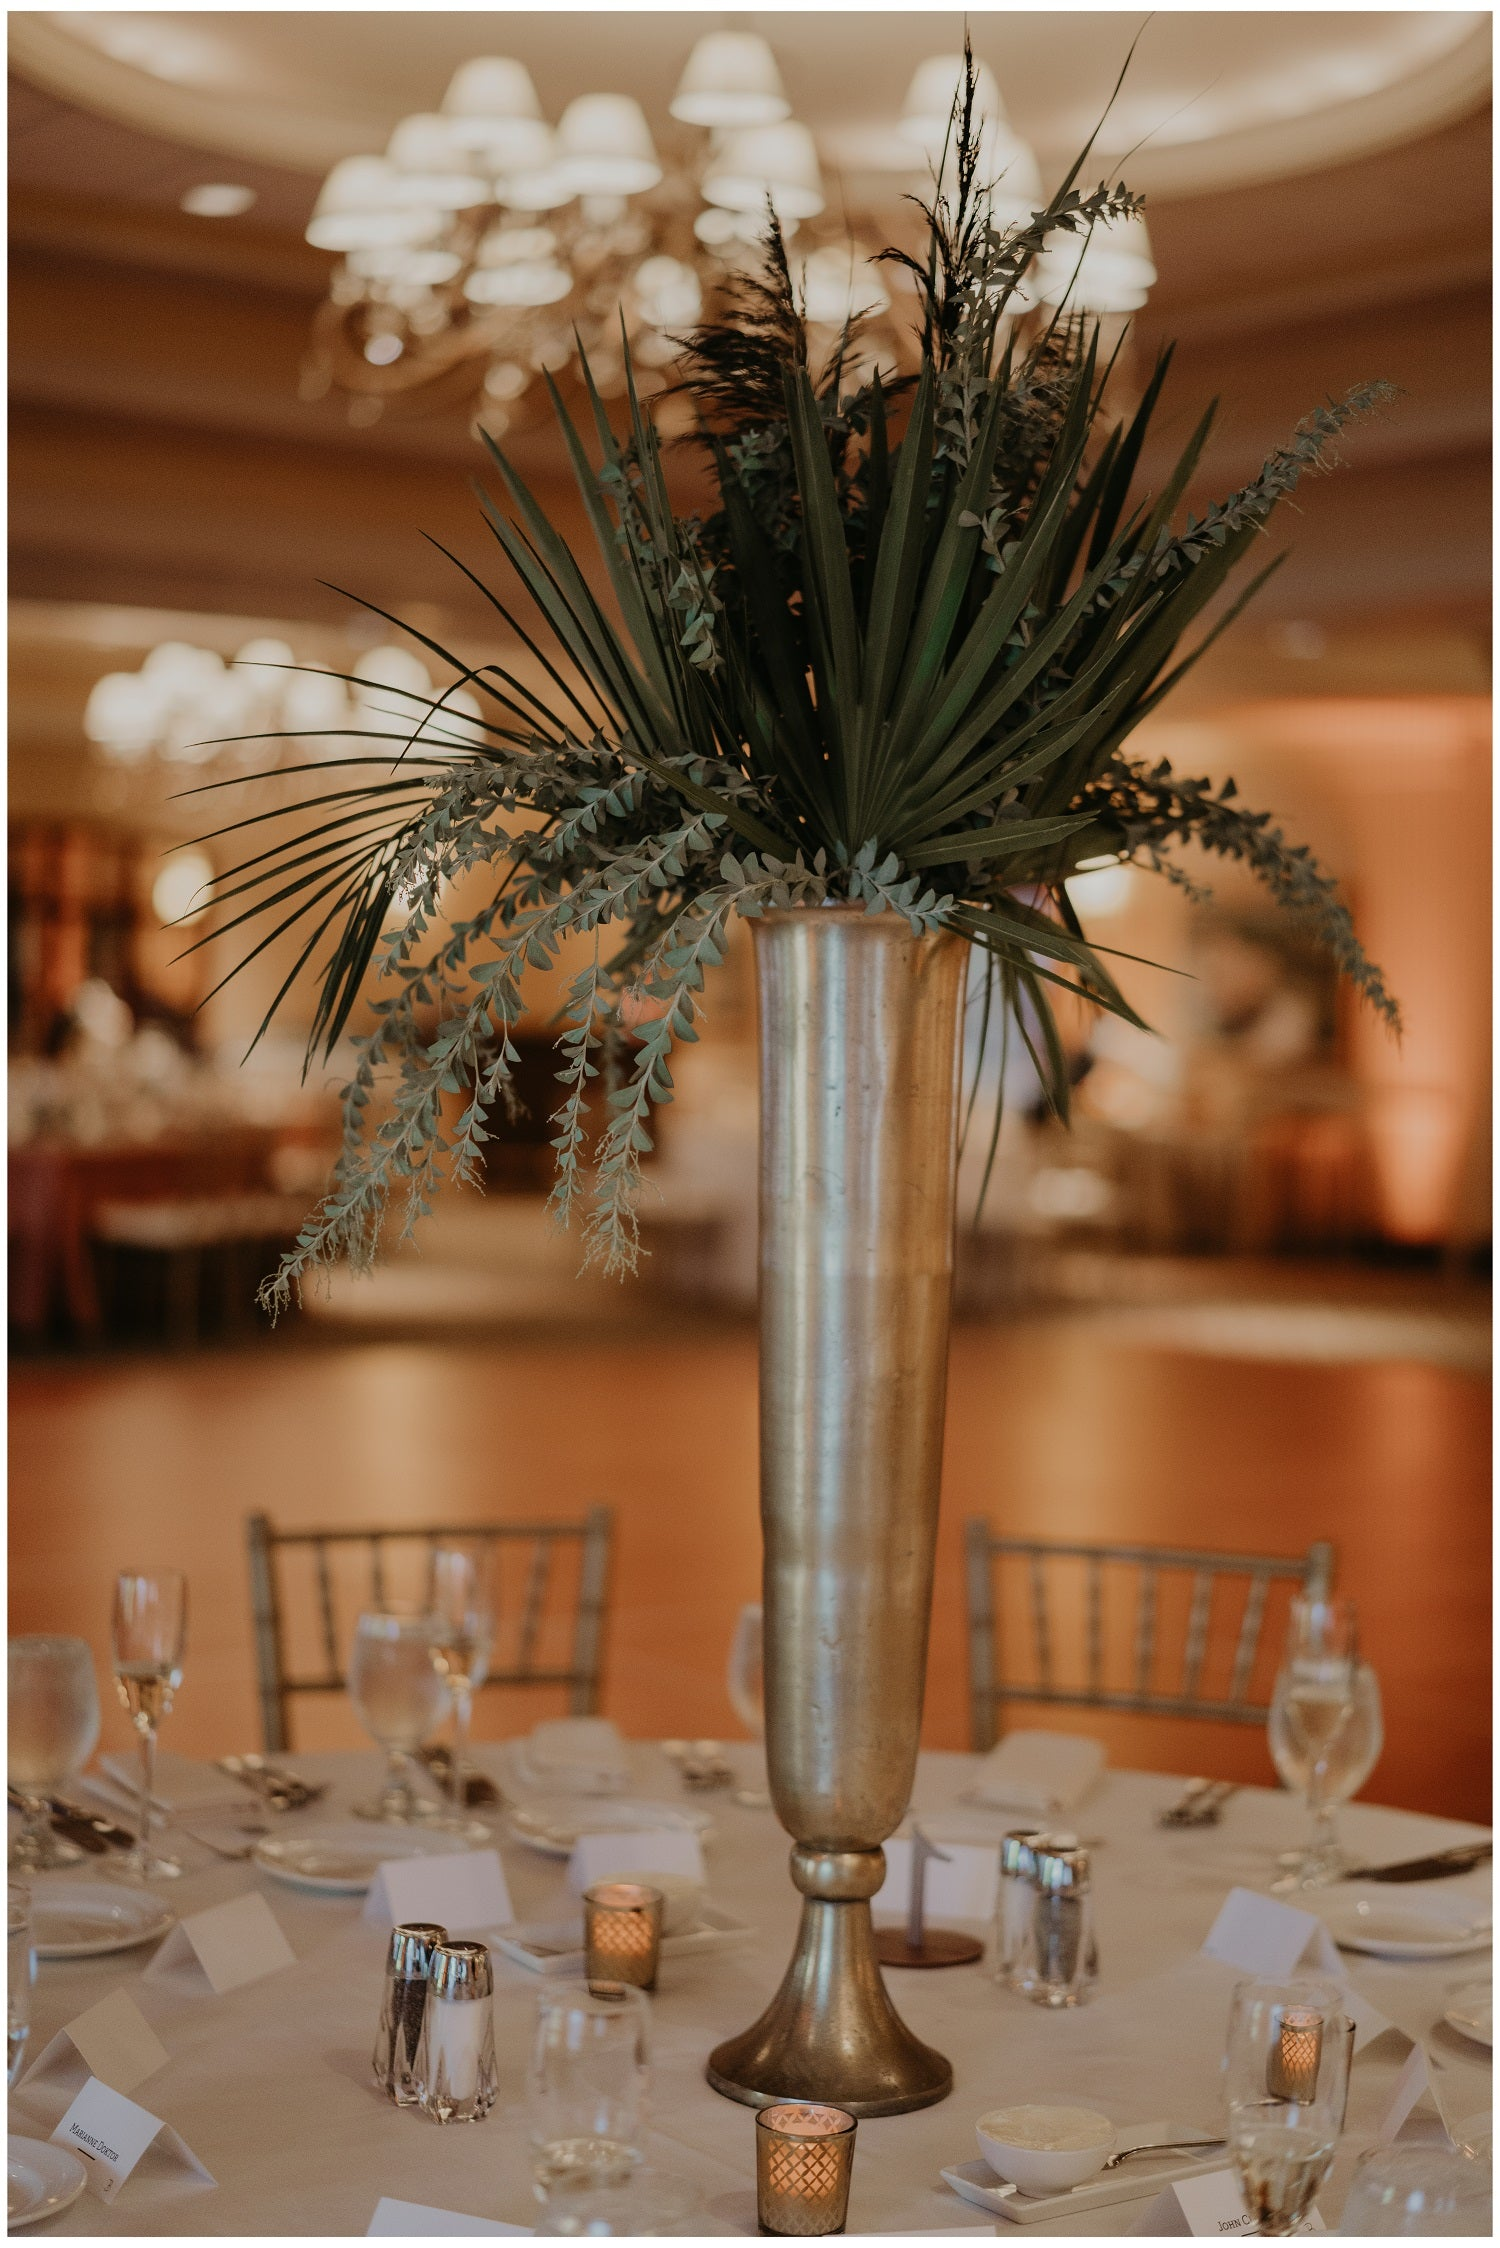 Tall all green centerpiece in gold vase